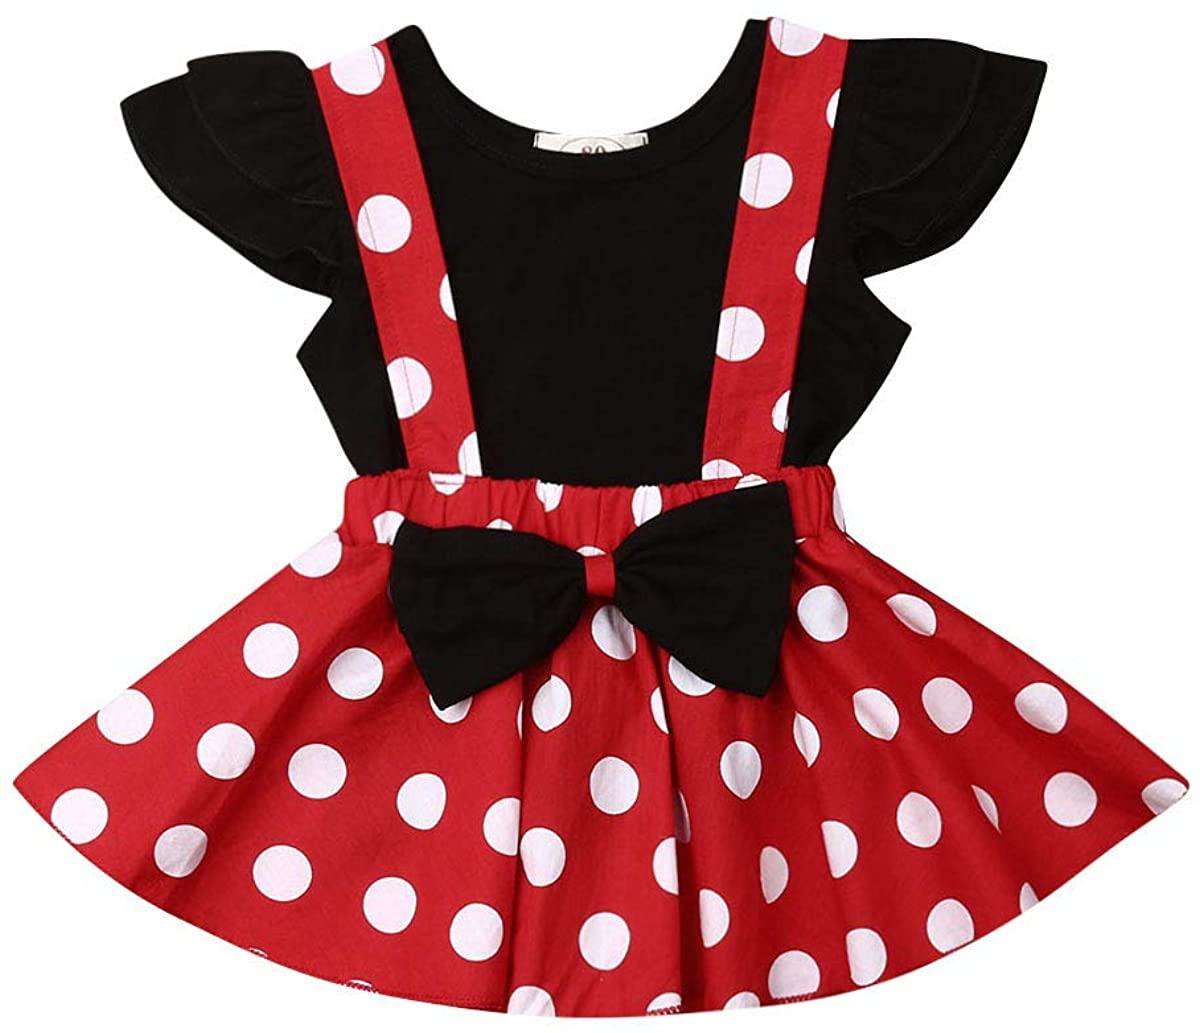 Toddler Baby Girls Ruffle T Shirts Polka Dot Suspender Skirts Playsuit Overall Outfits Set